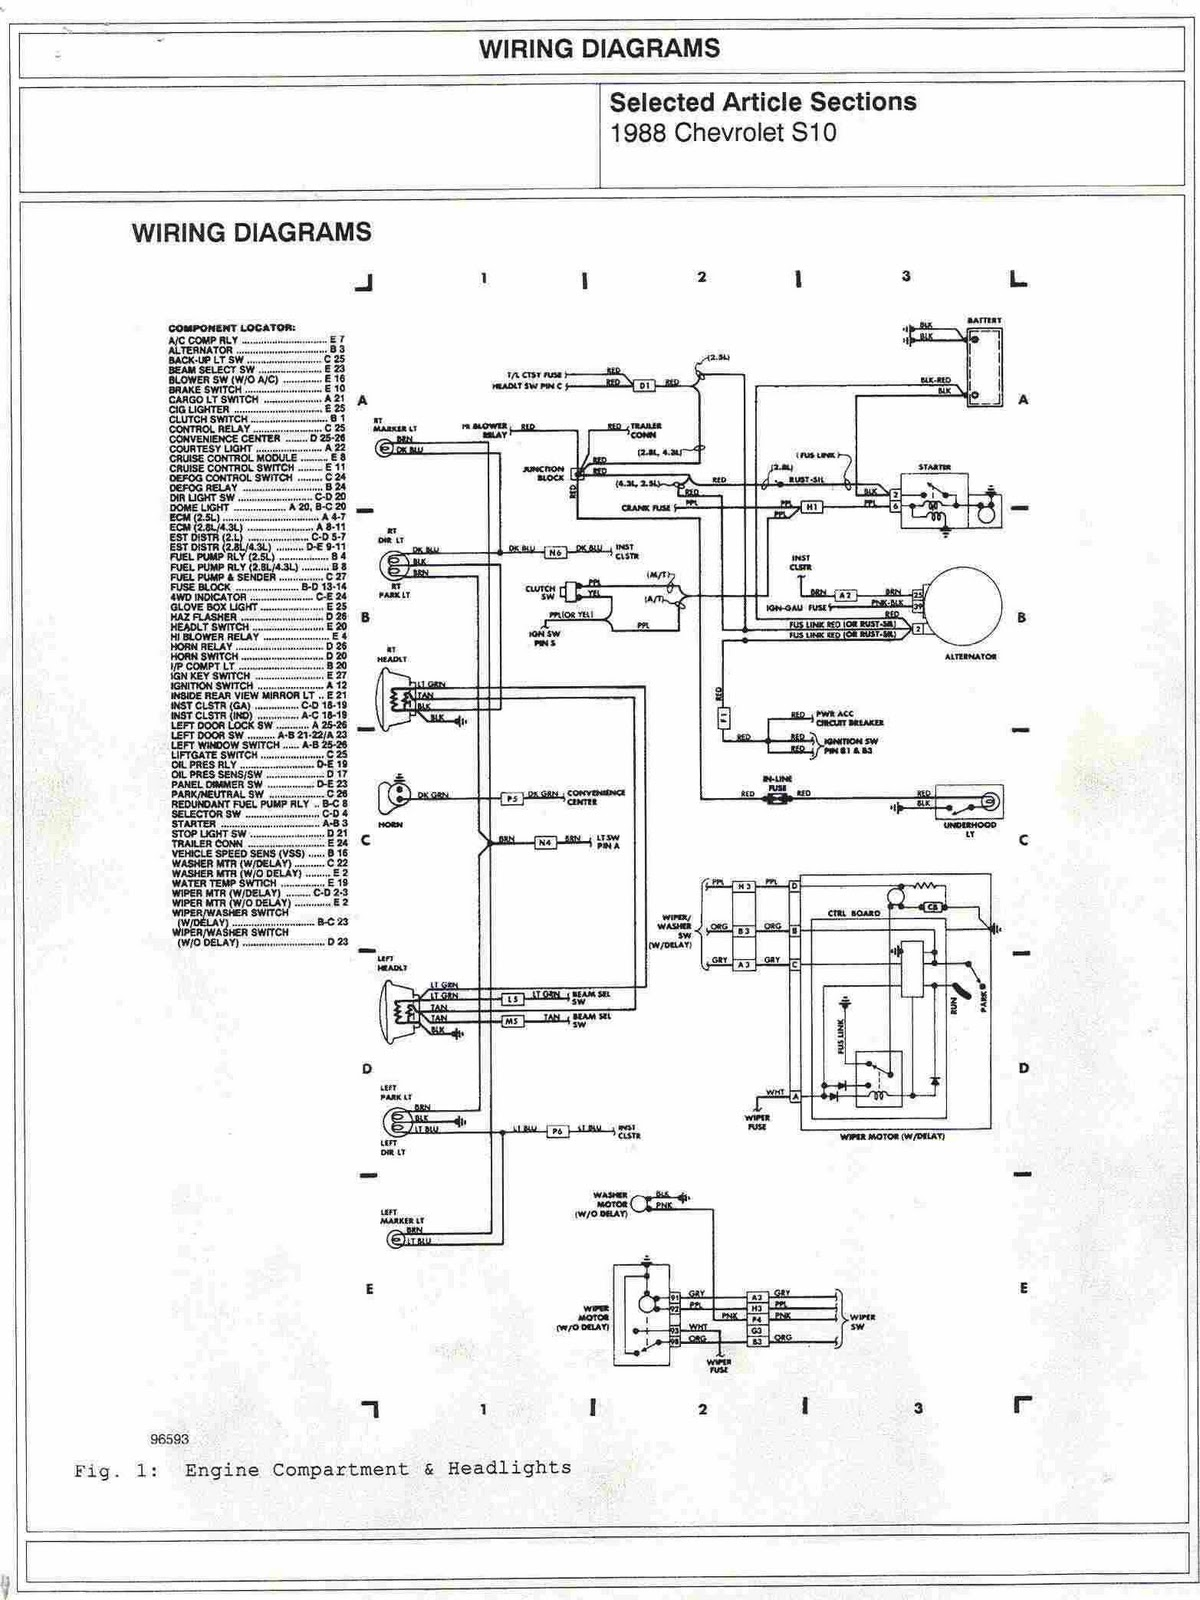 1988+Chevrolet+S10+Engine+Compartment+and+Headlights+Wiring+Diagrams 95 s10 wiring diagram 95 tahoe wiring diagram \u2022 wiring diagrams Control Panel Electrical Wiring Basics at honlapkeszites.co